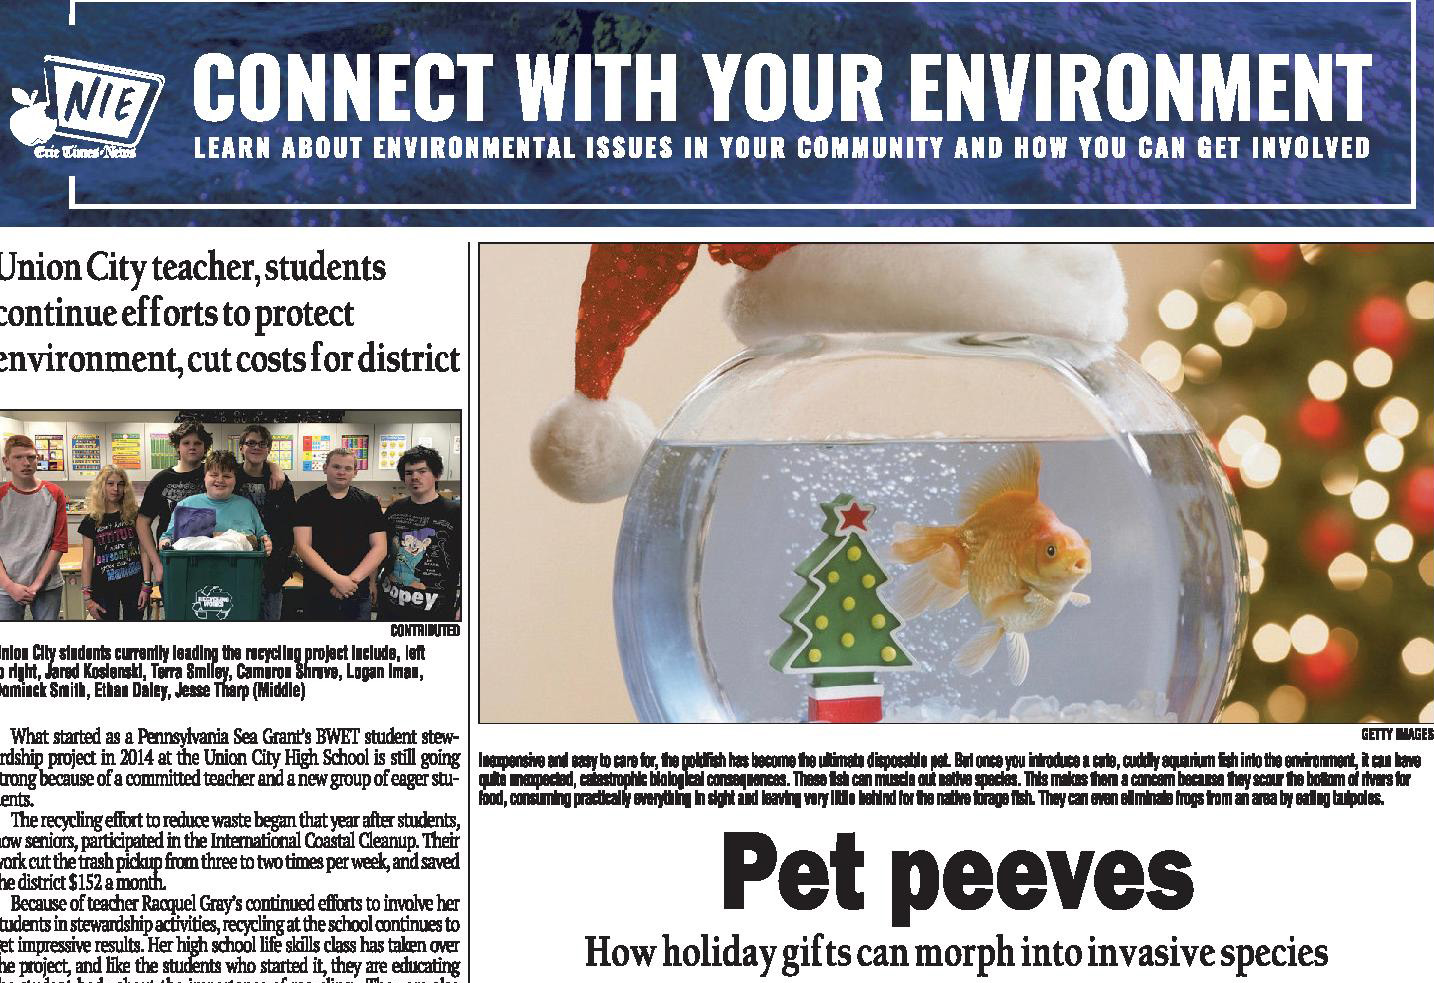 How holiday gifts can morph into invasive species